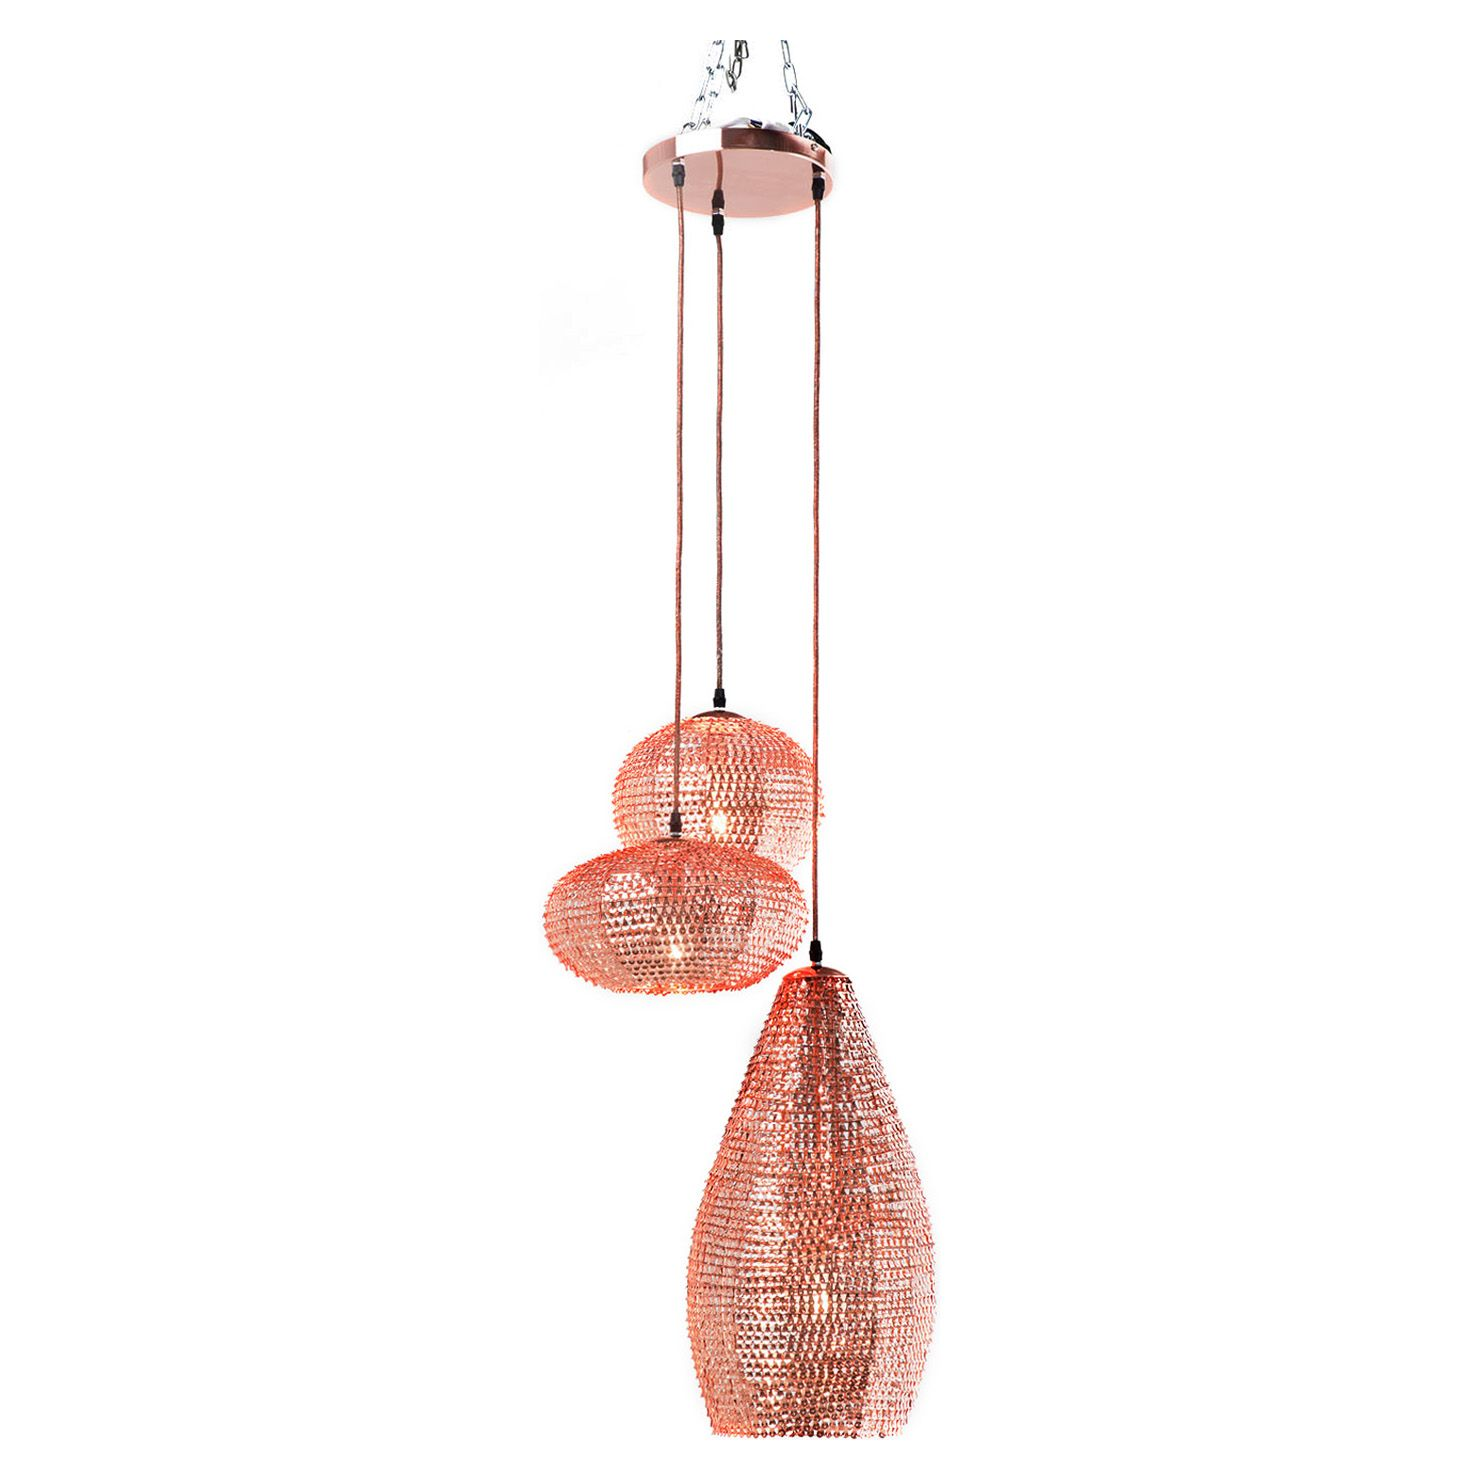 Cumberly Pendant Lamp Achica With Images Pendant Lamp Discount Designer Branding Design